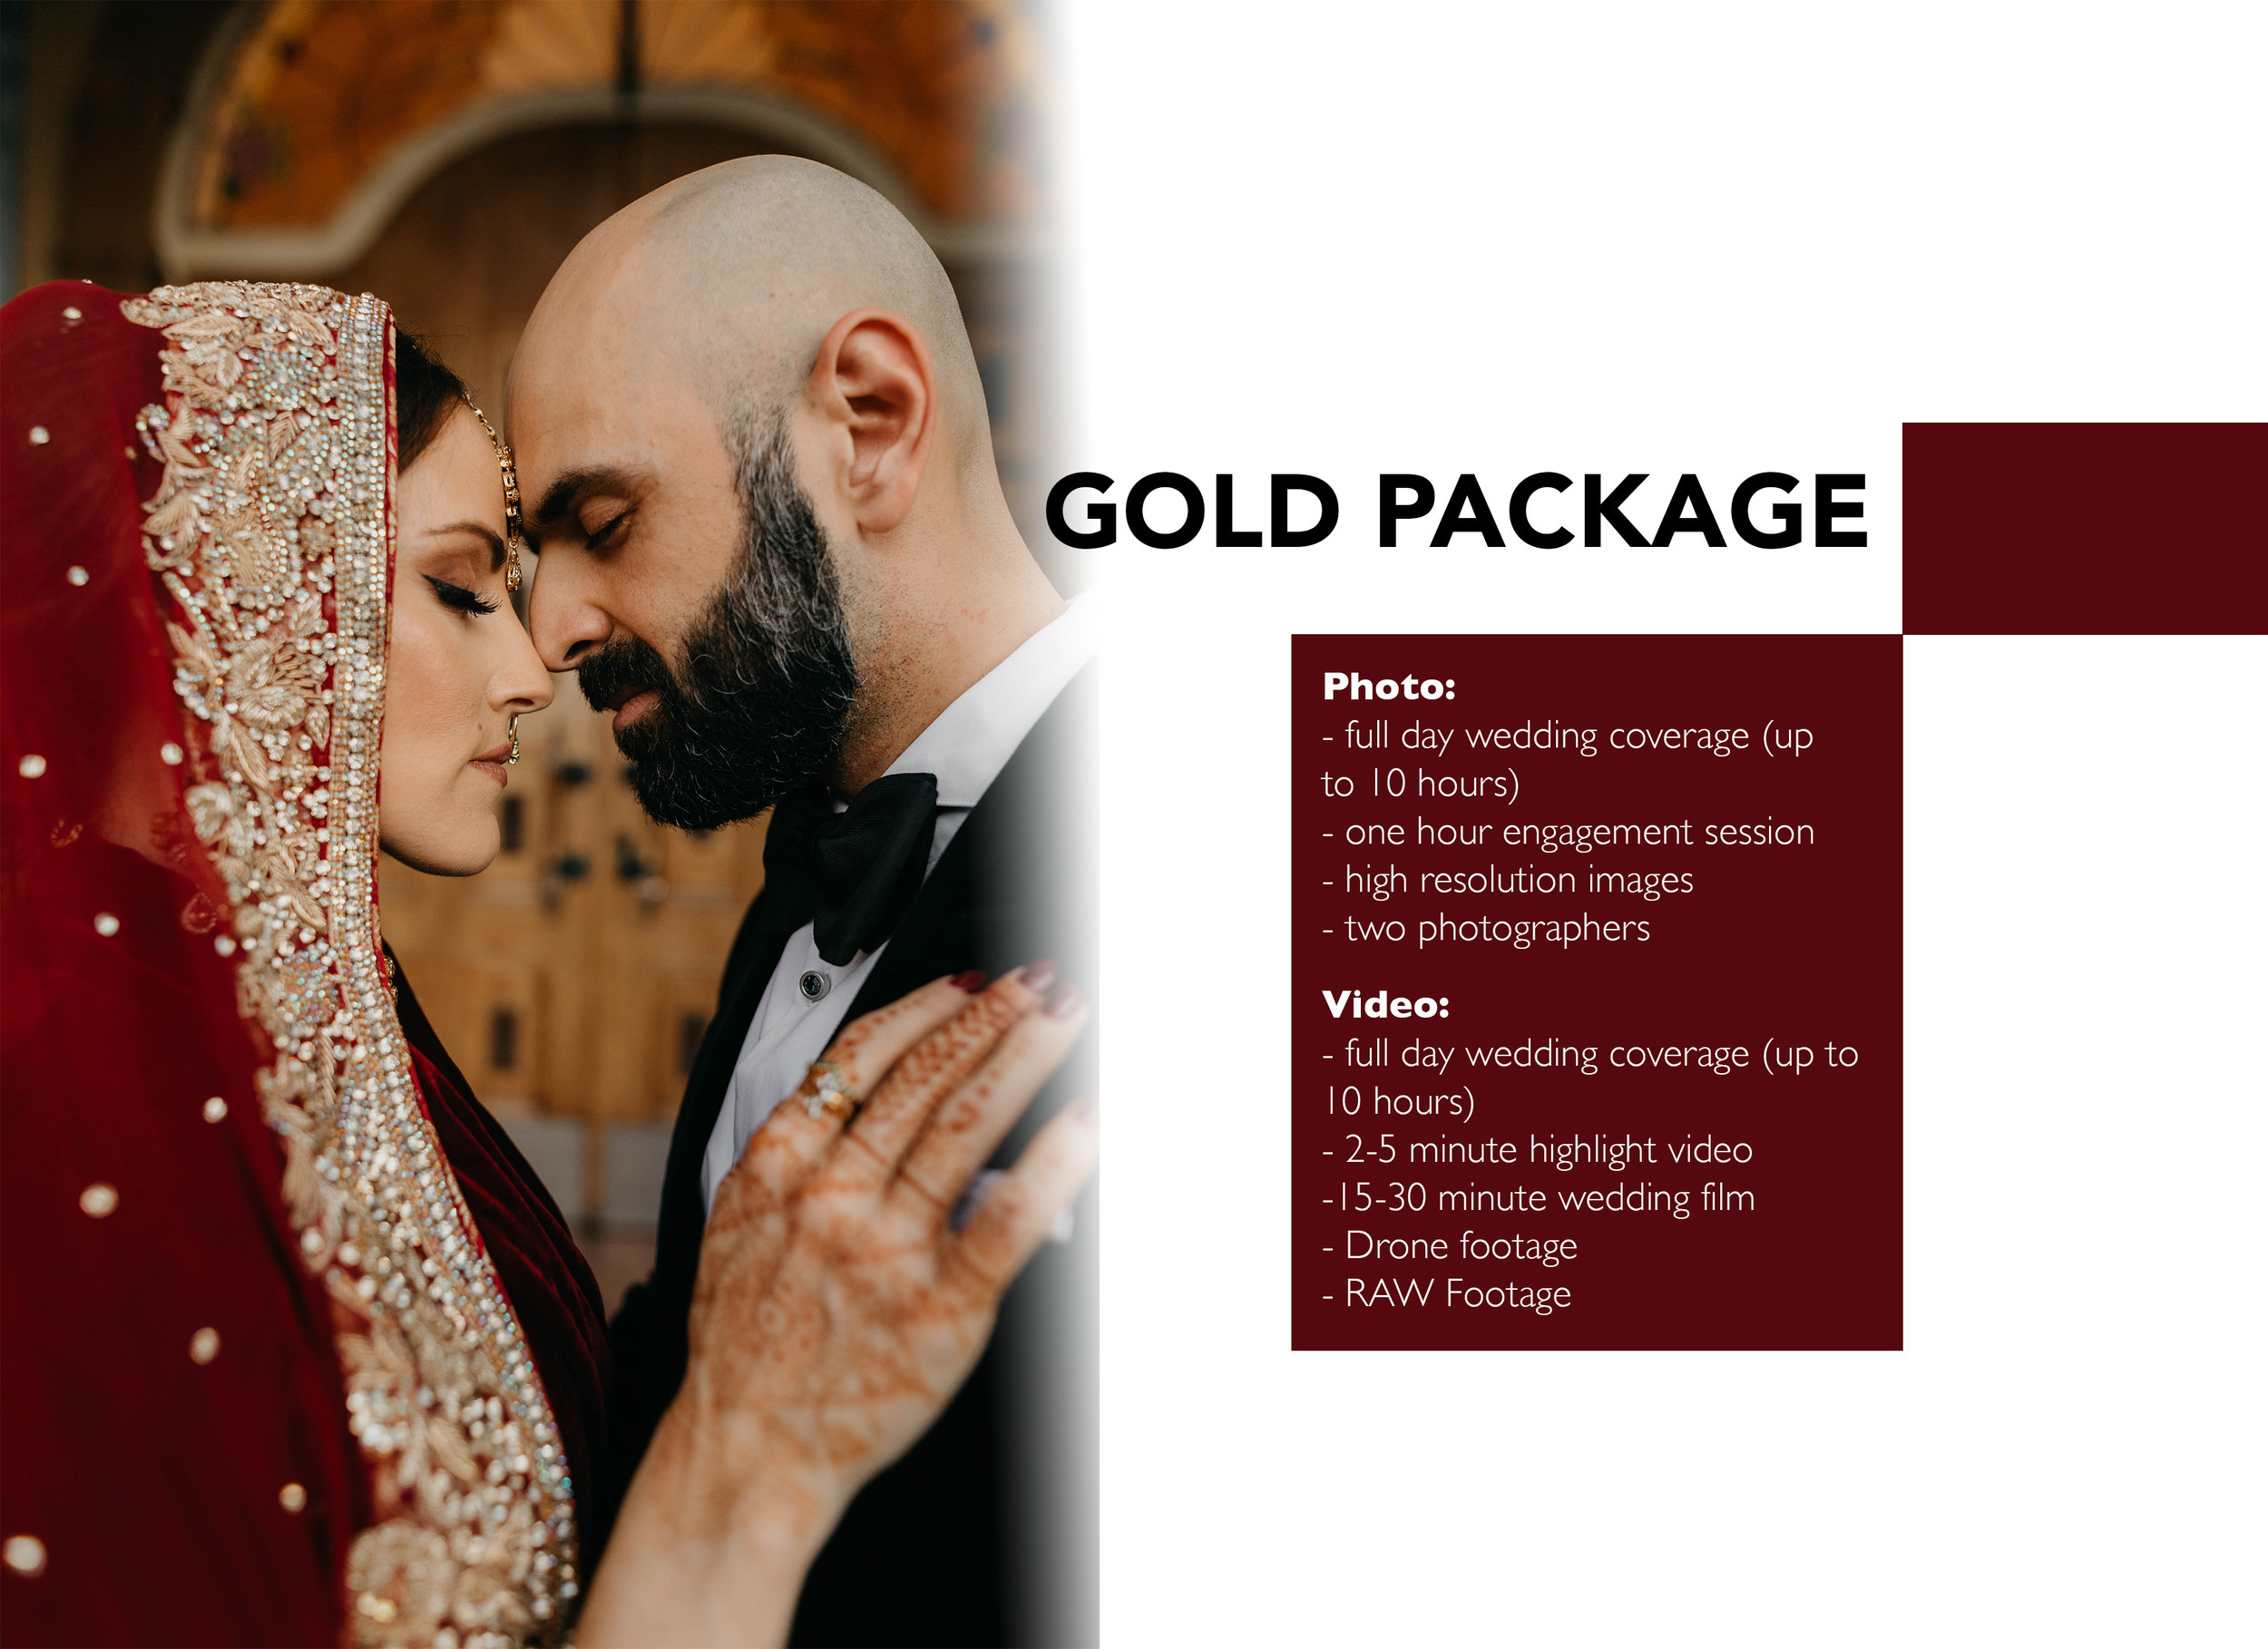 photo and video wedding packages.jpg